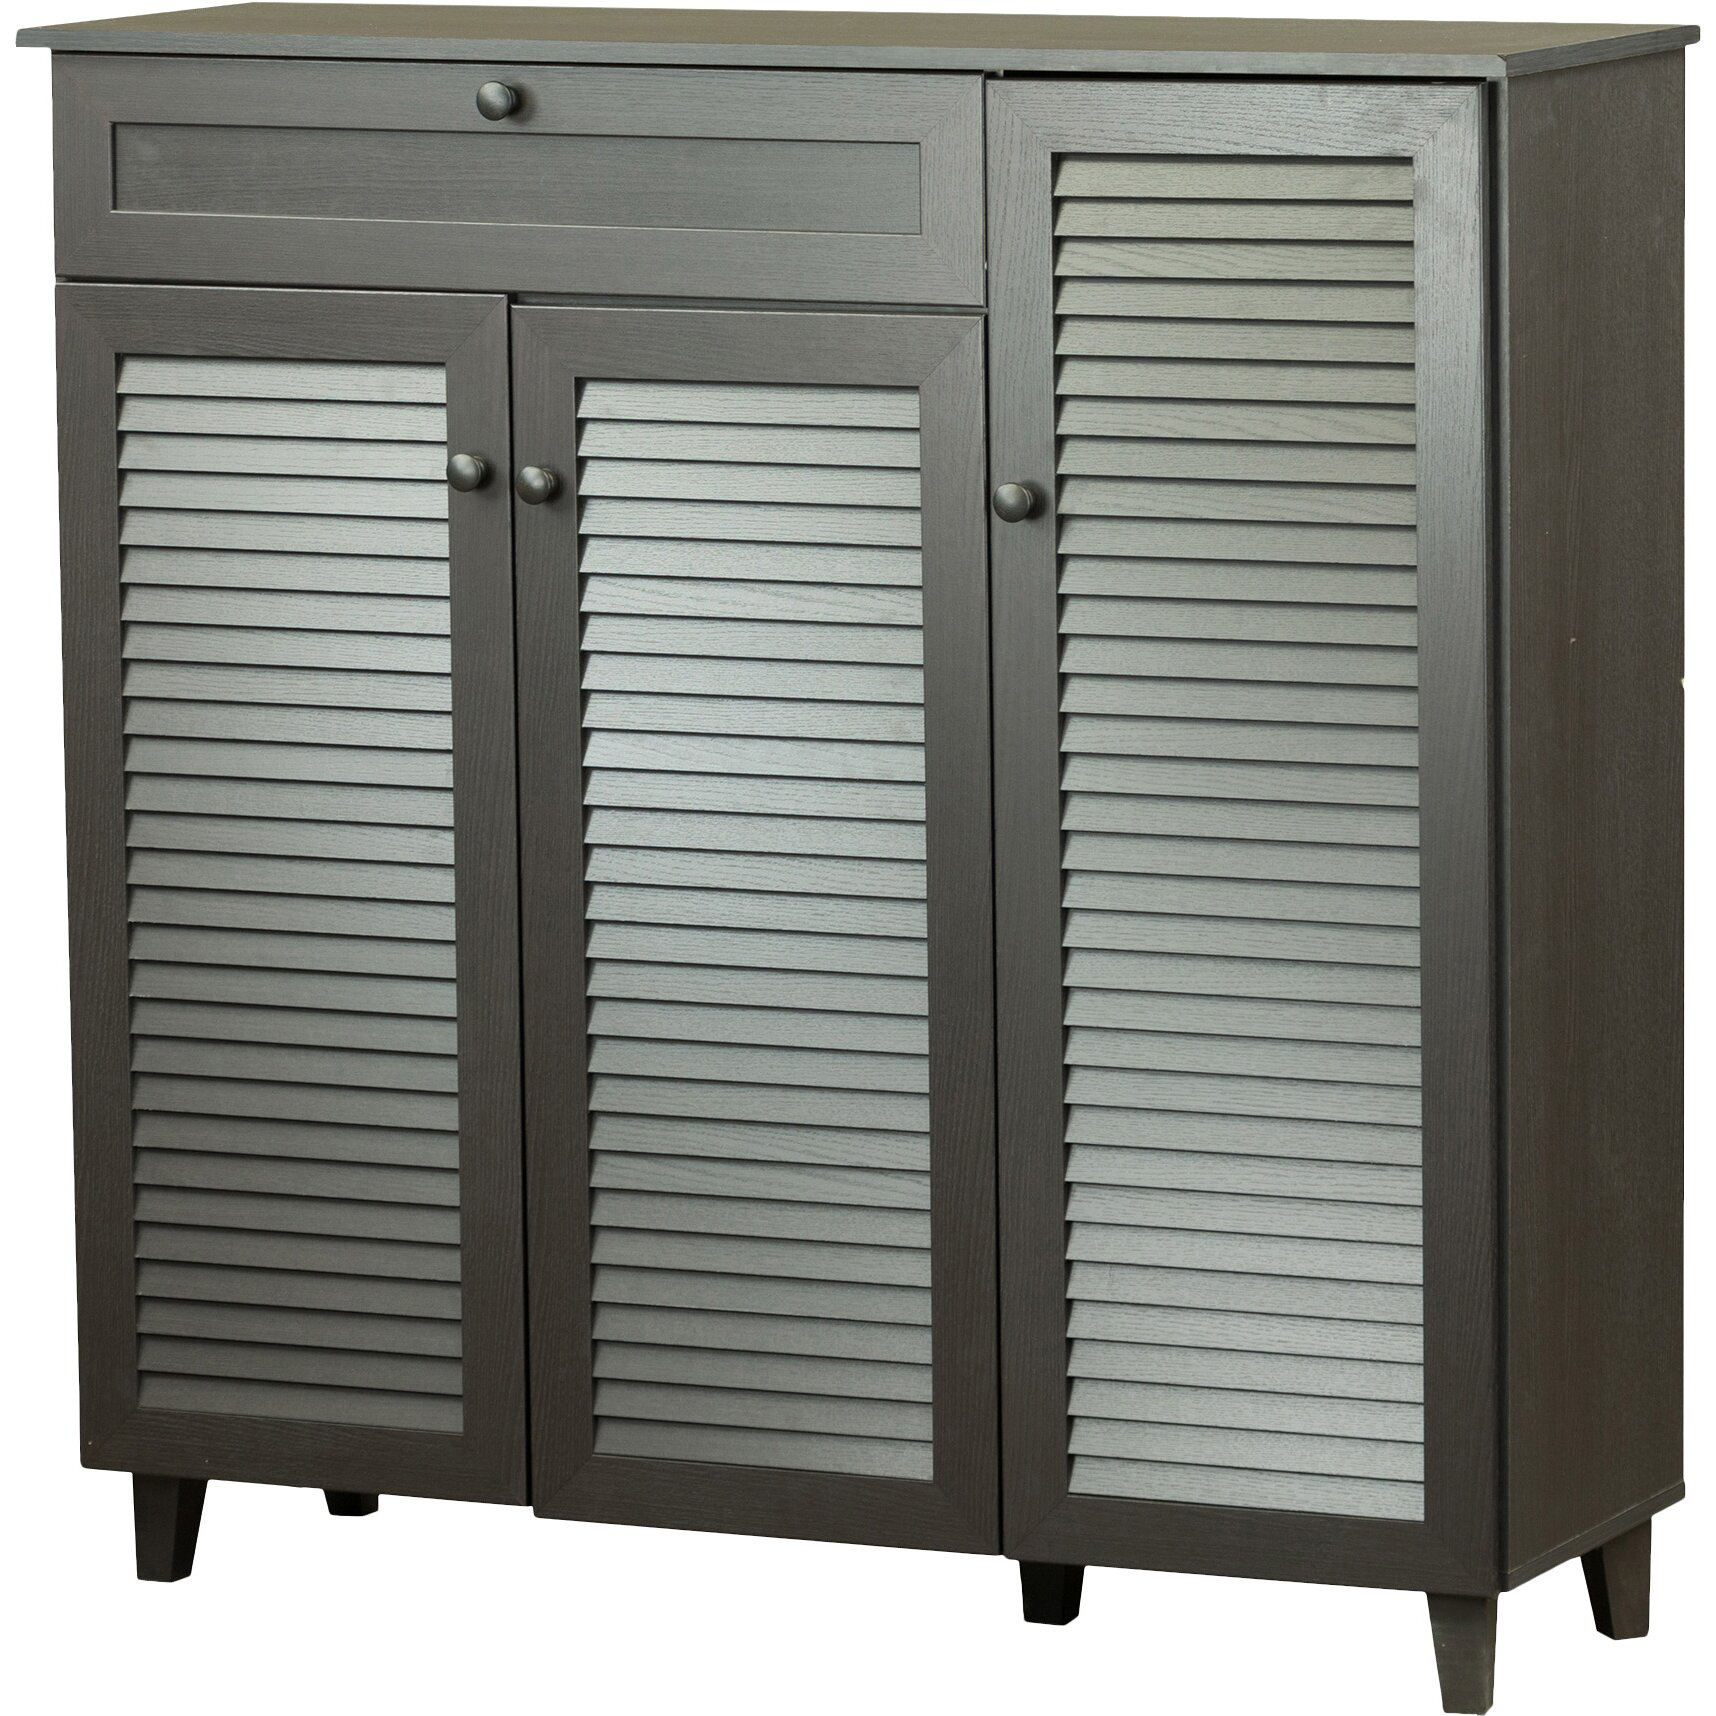 wholesale interiors pocillo shoe storage cabinet reviews wayfair